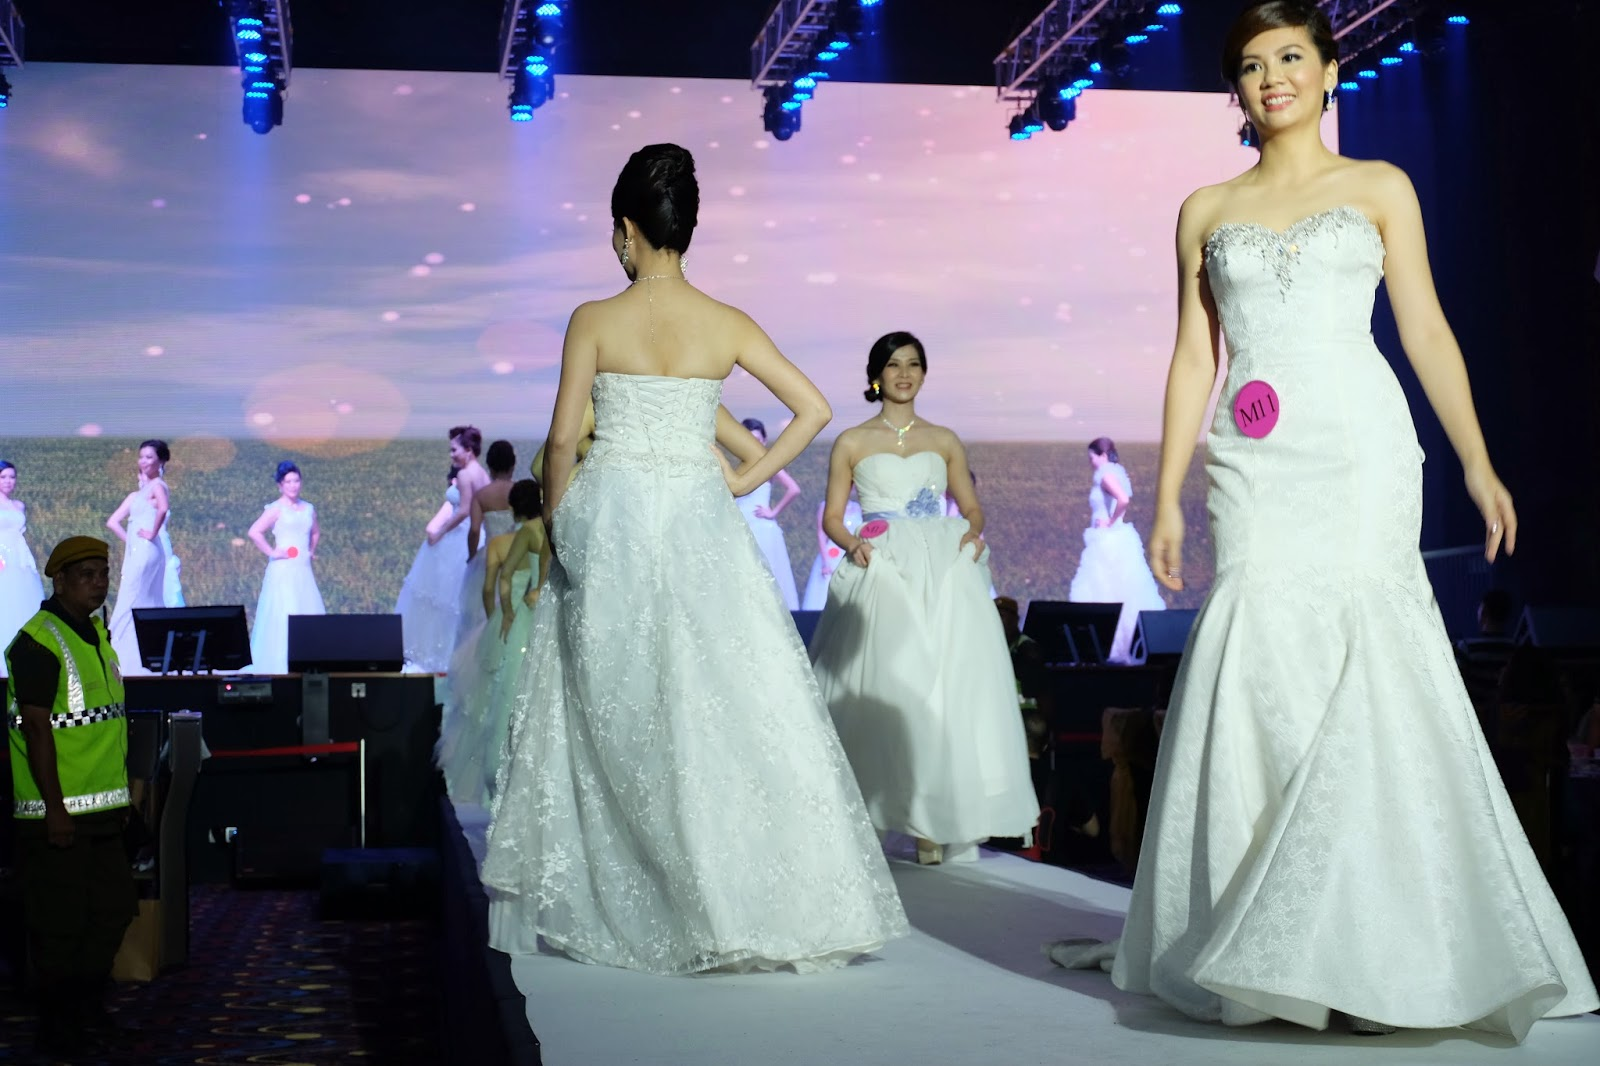 WEDDING GOWN PARADE BY ALL 26 FINALISTS IN BOTH CATEGORIES OF MRS MALAYSIA CHINATOWN AND CLASSIC